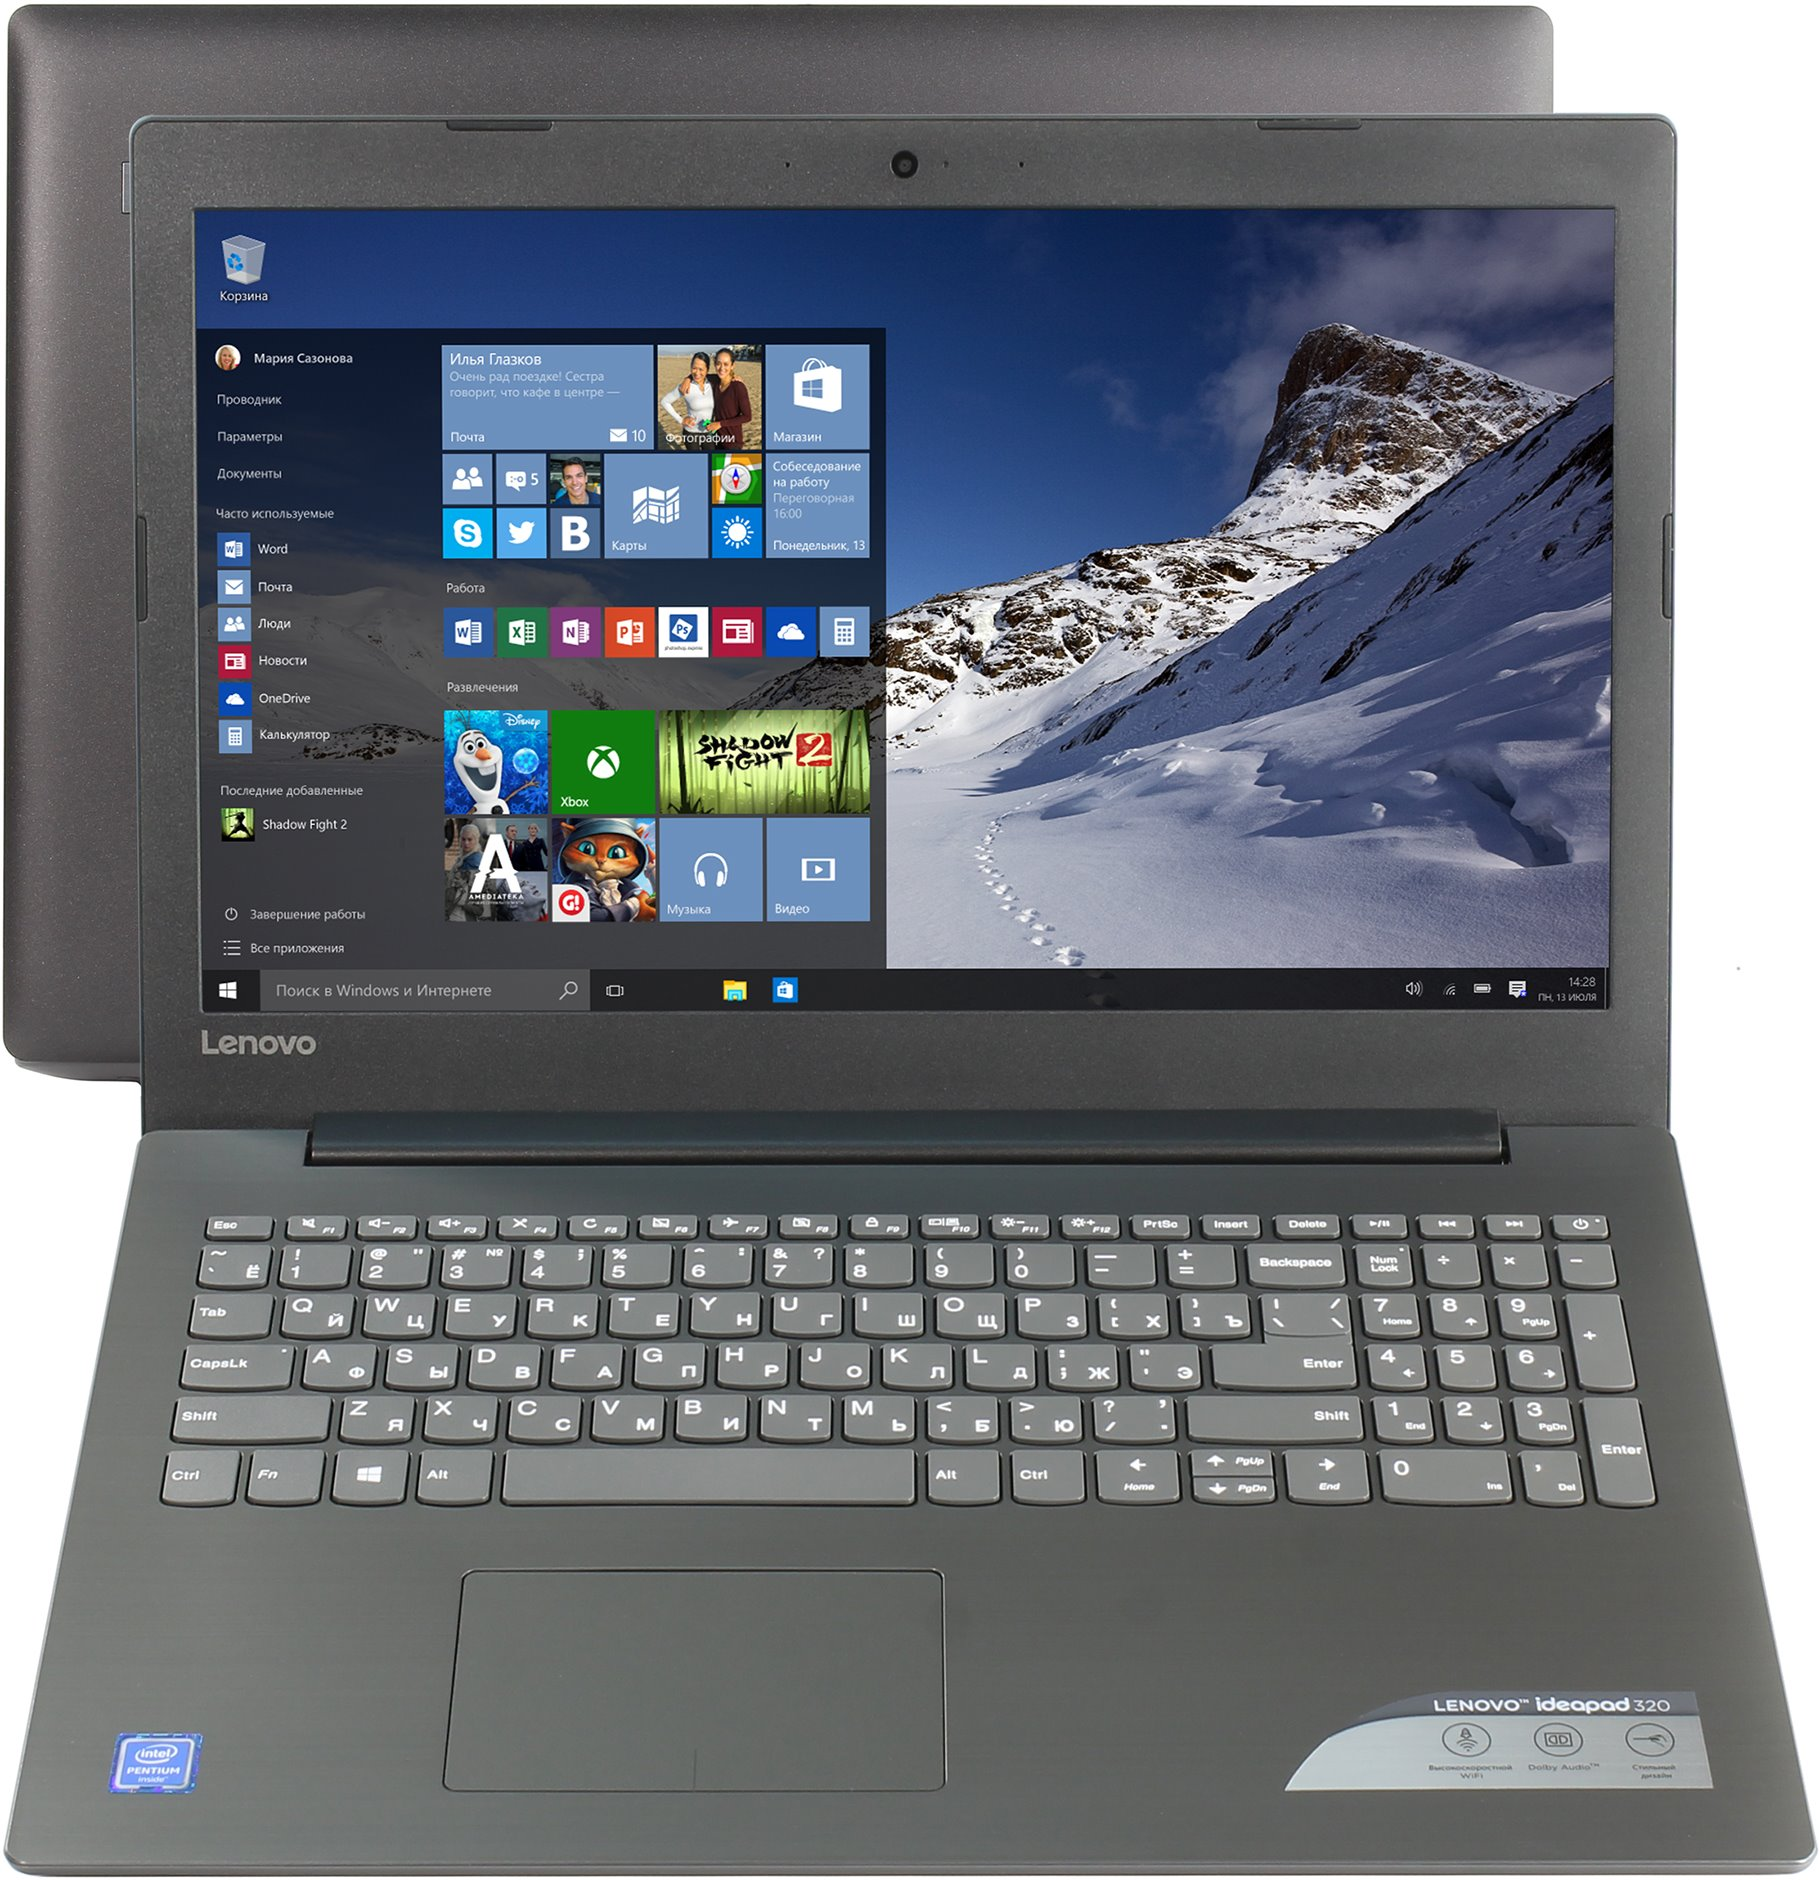 "Laptop Lenovo IdeaPad 320-15IAP, iPentium N4200, 4Gb, 500Gb, iHD620+HDMI, 15.6"" HD, CR, Win 10H, Grey 2"